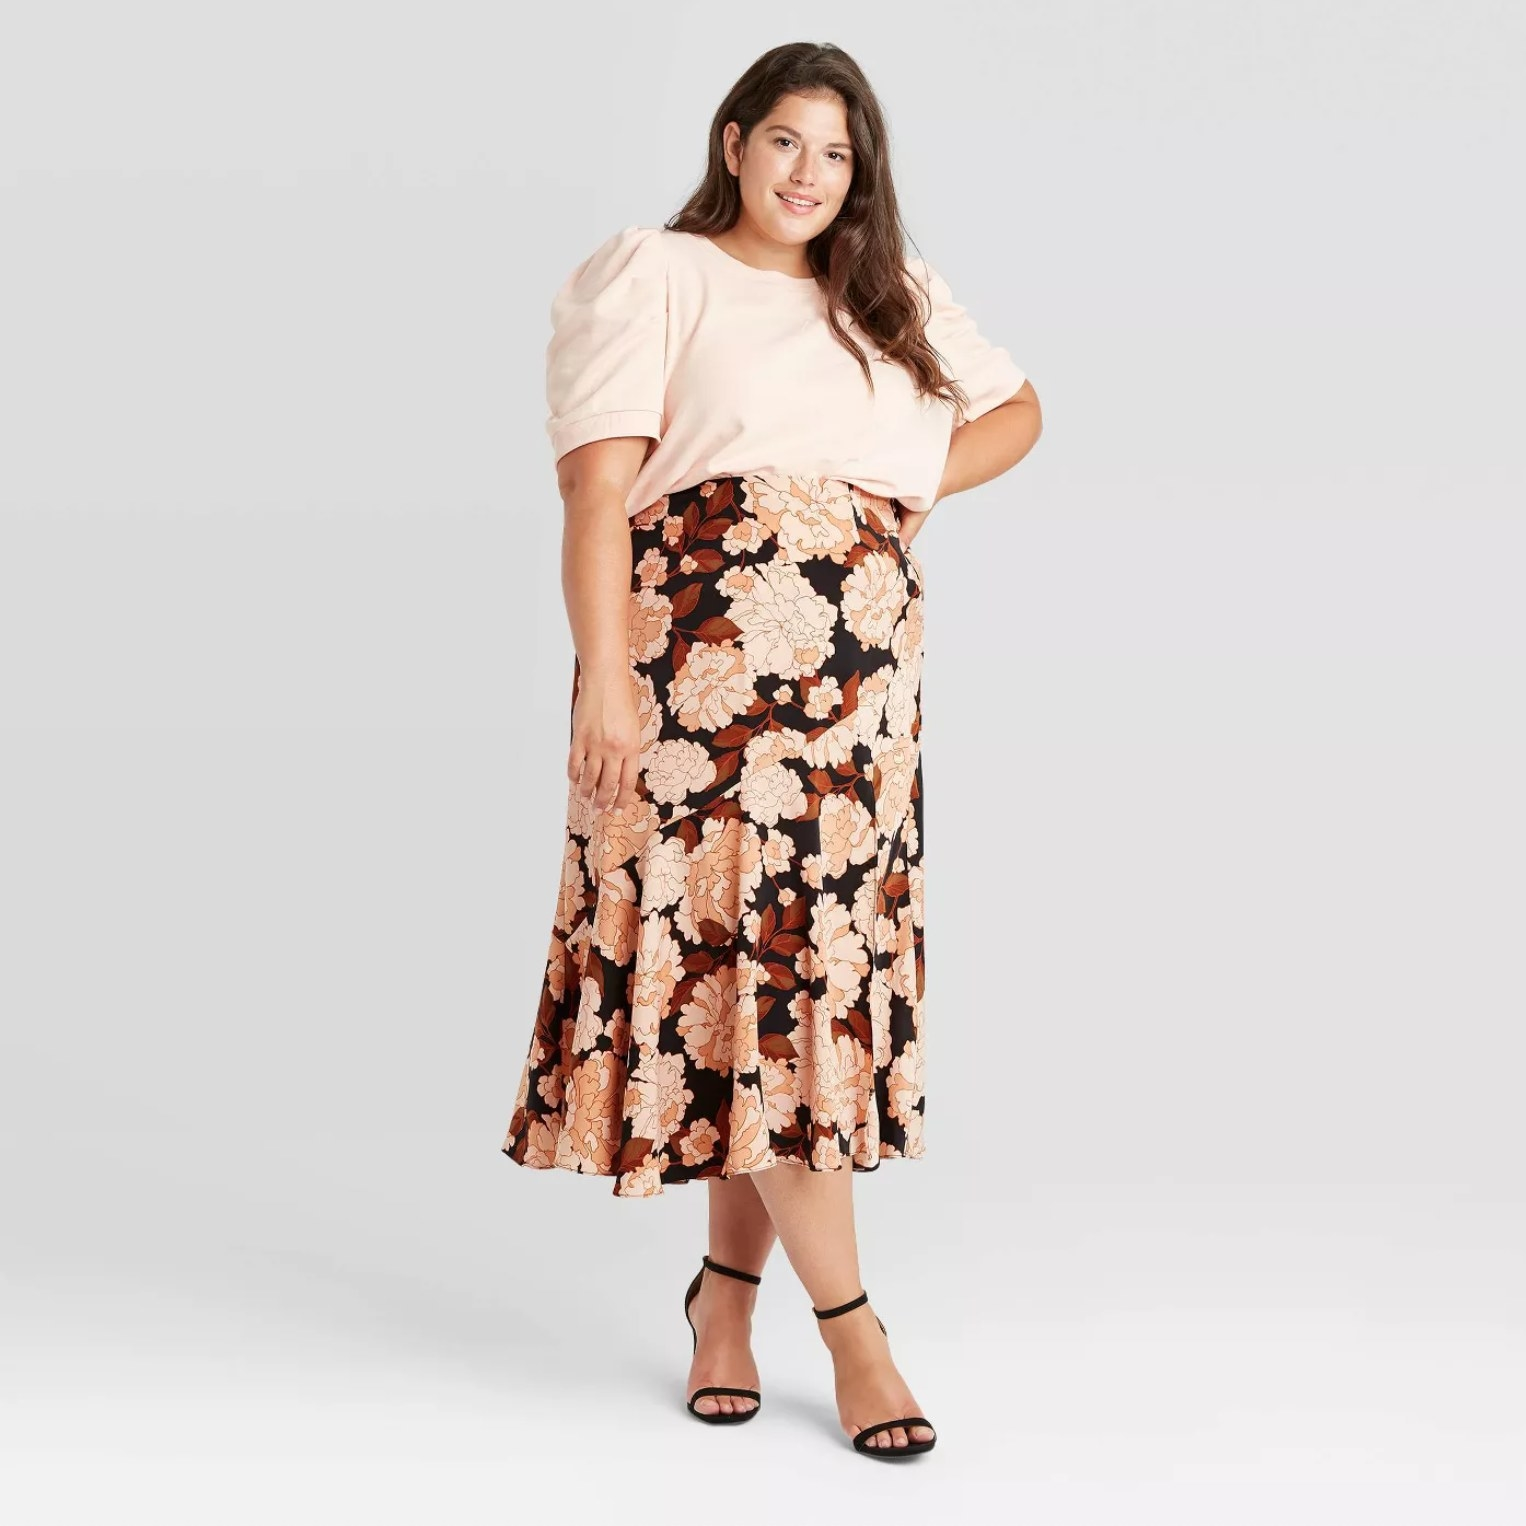 Model wearing the skirt in floral pink